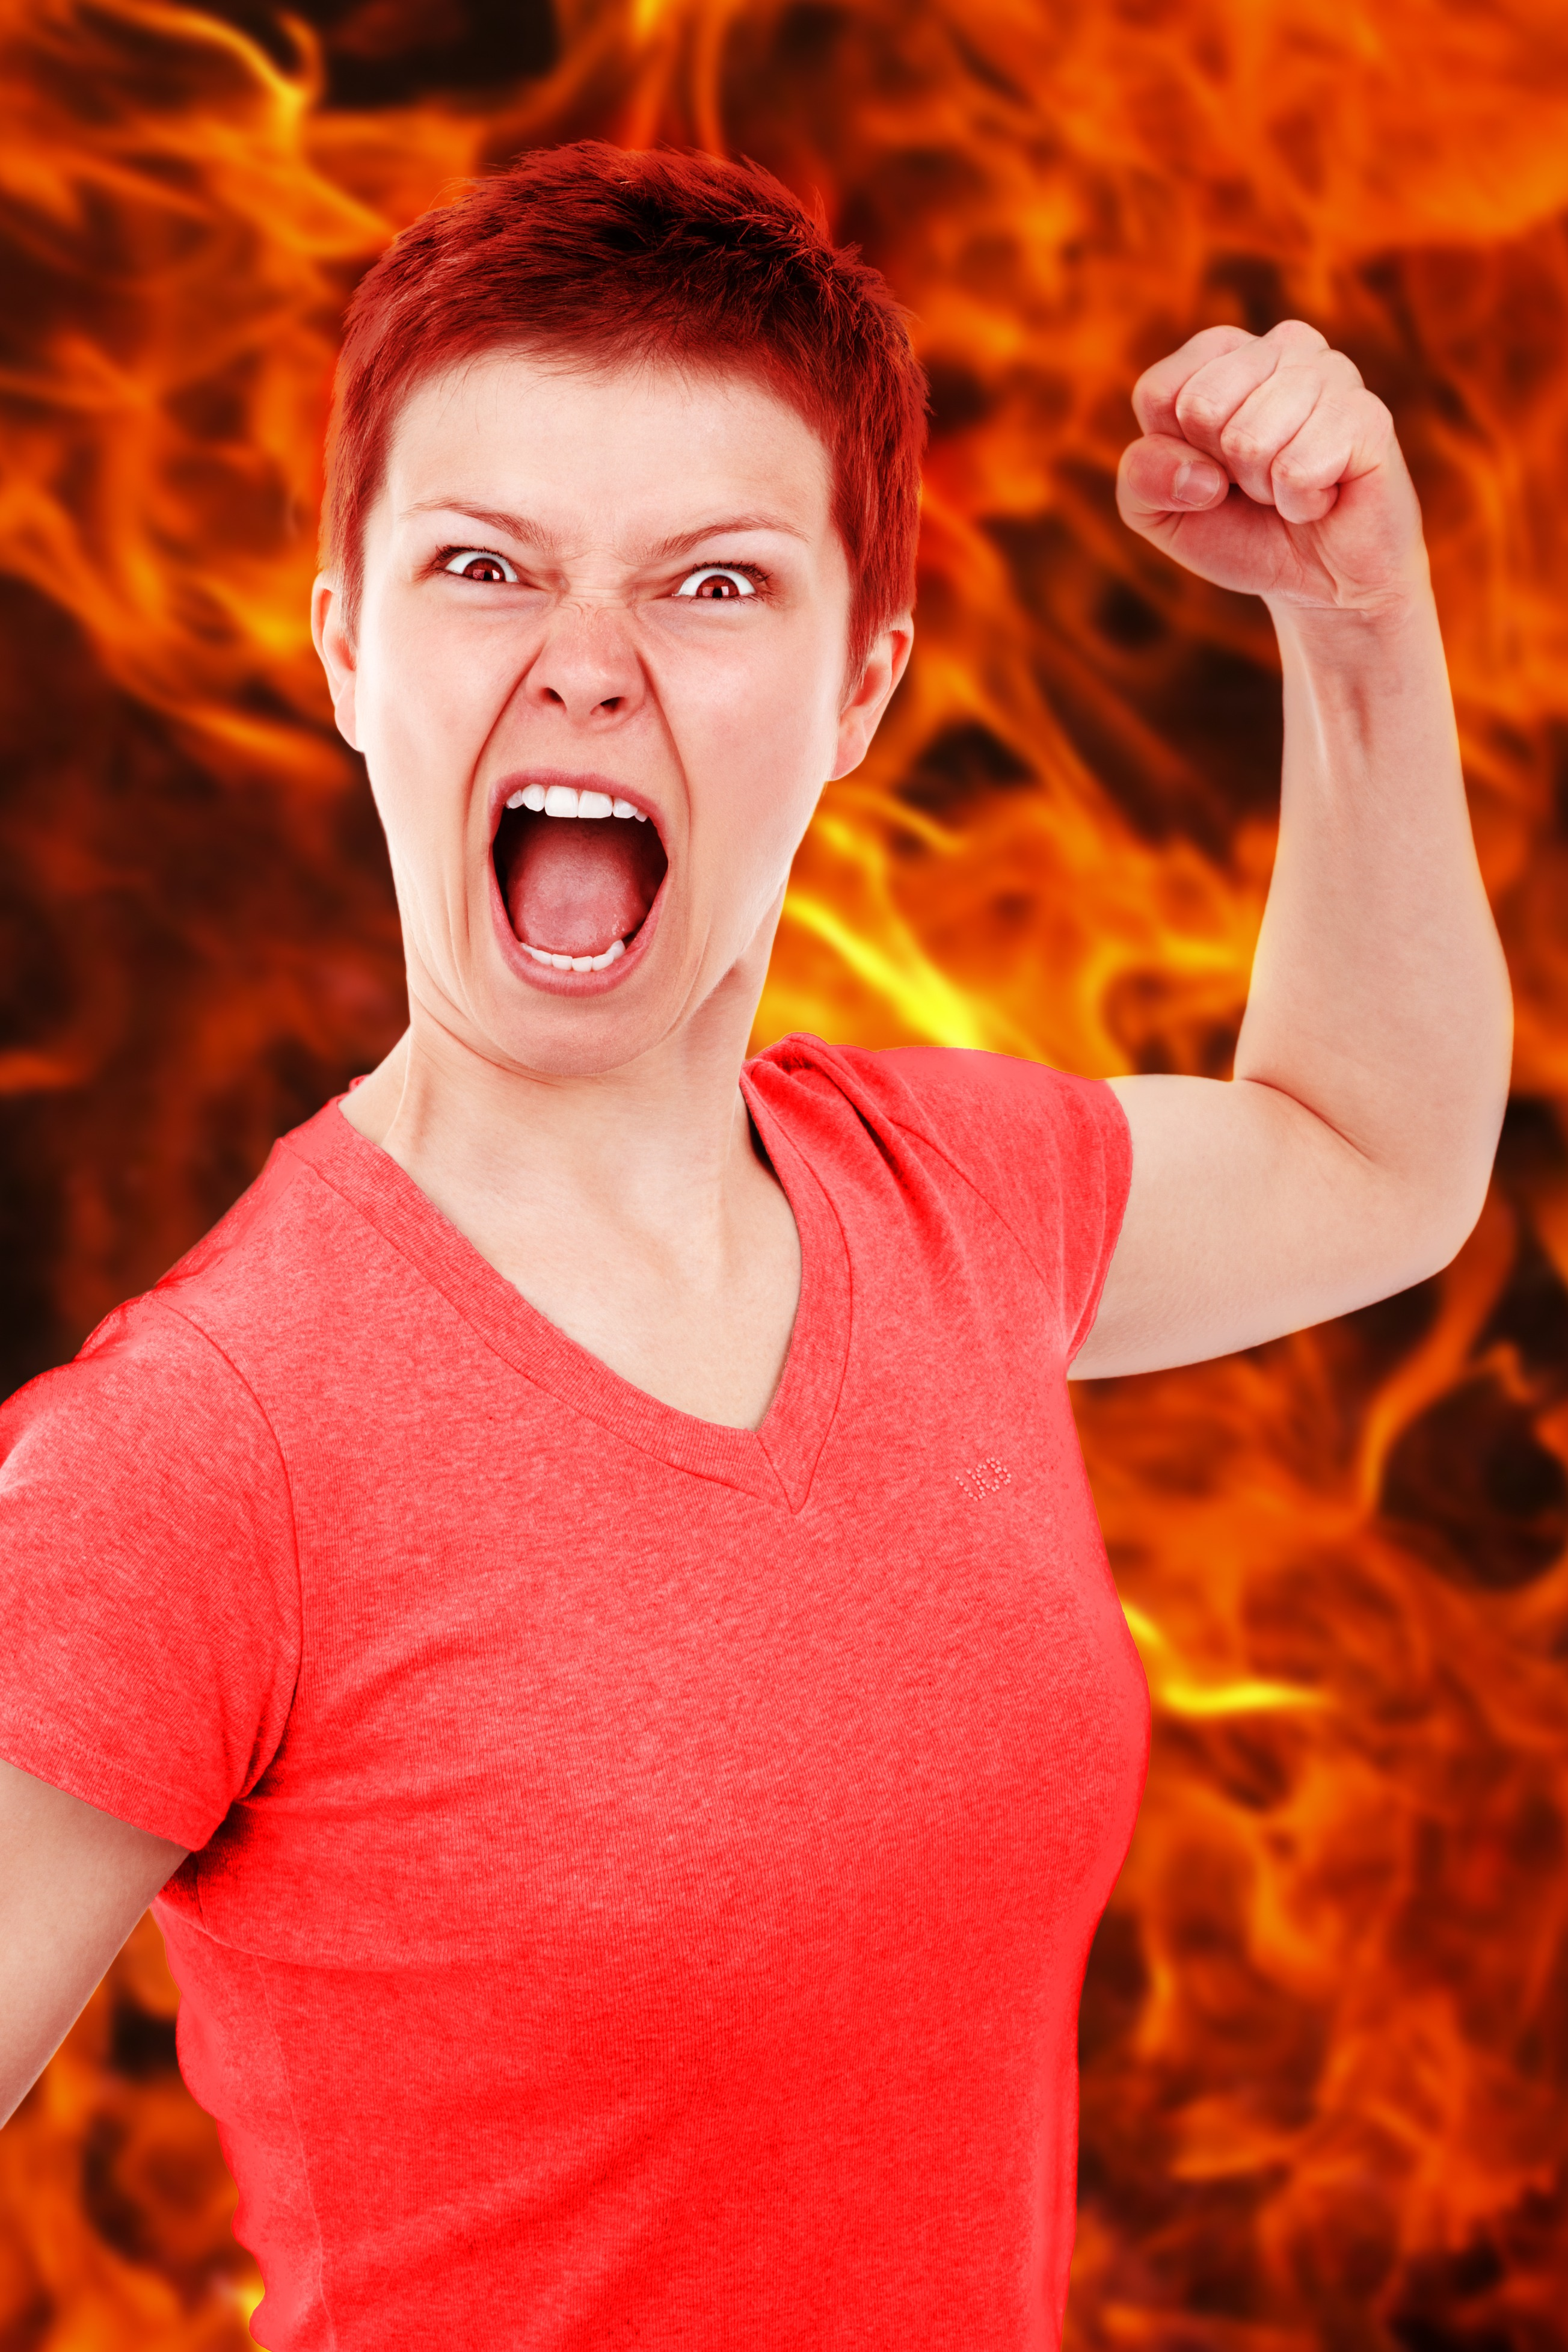 Angry Lady, Activity, Anger, Angry, Fashion, HQ Photo